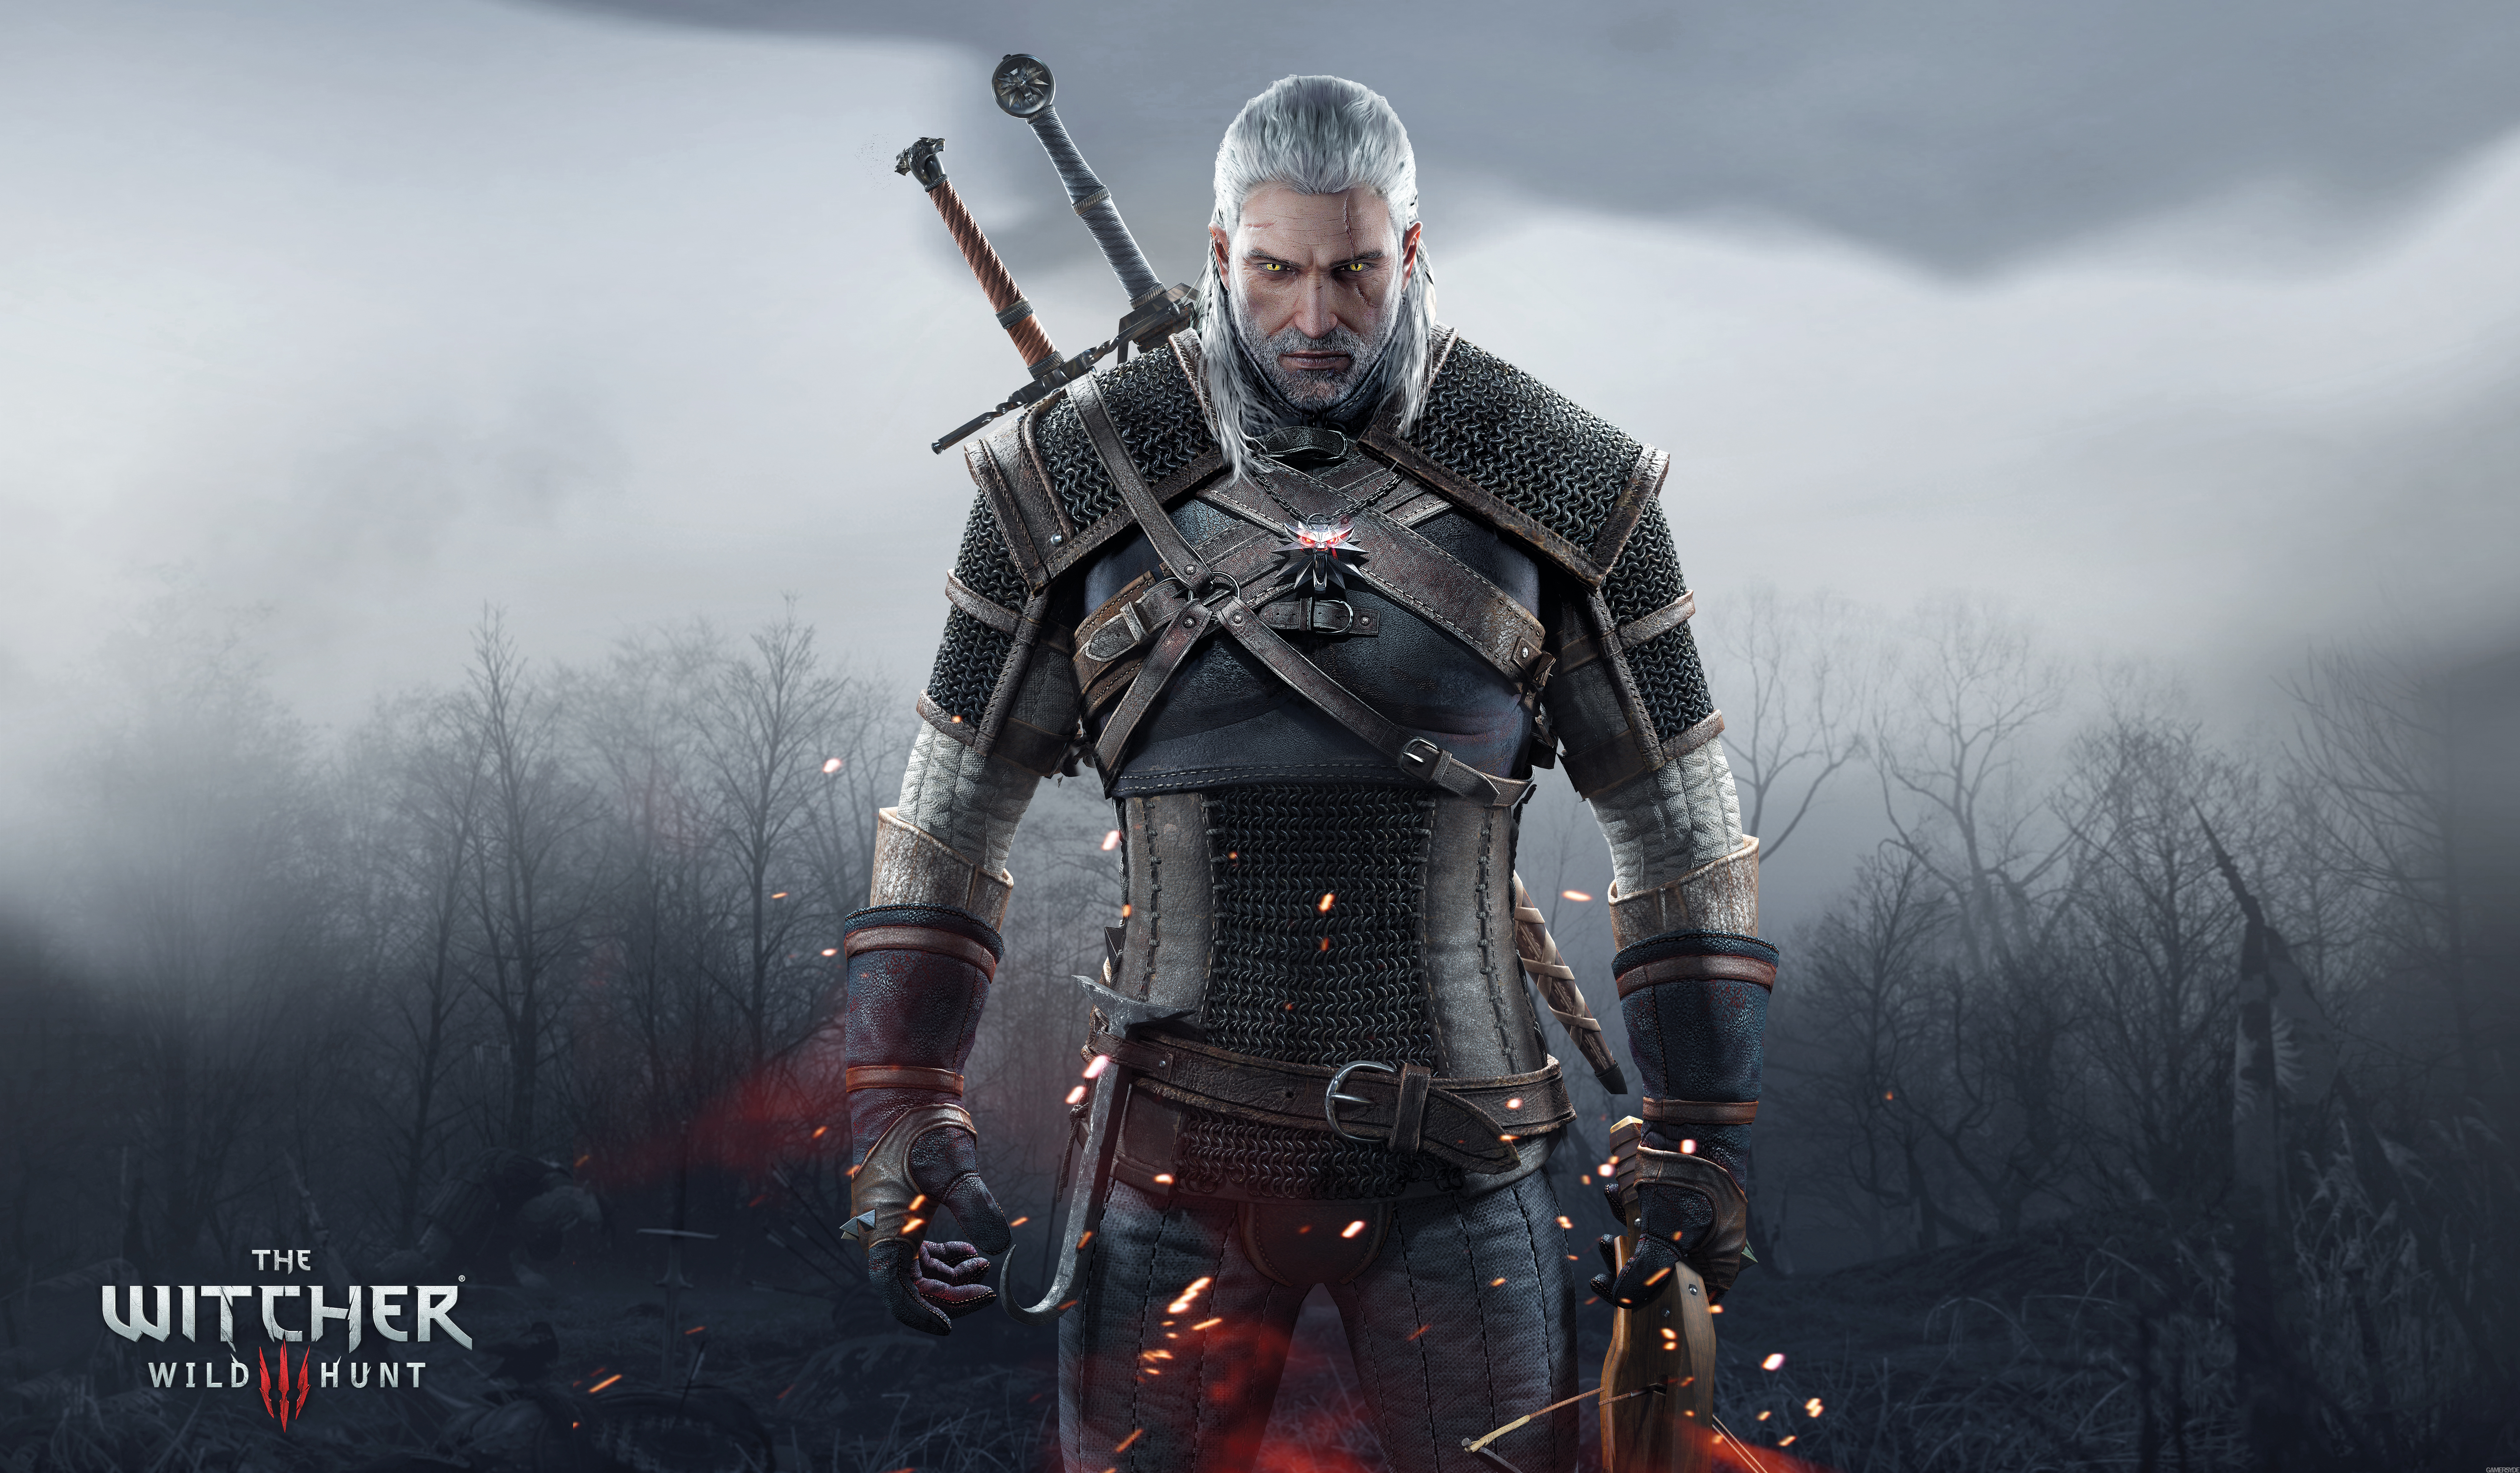 The witcher phone wallpaper